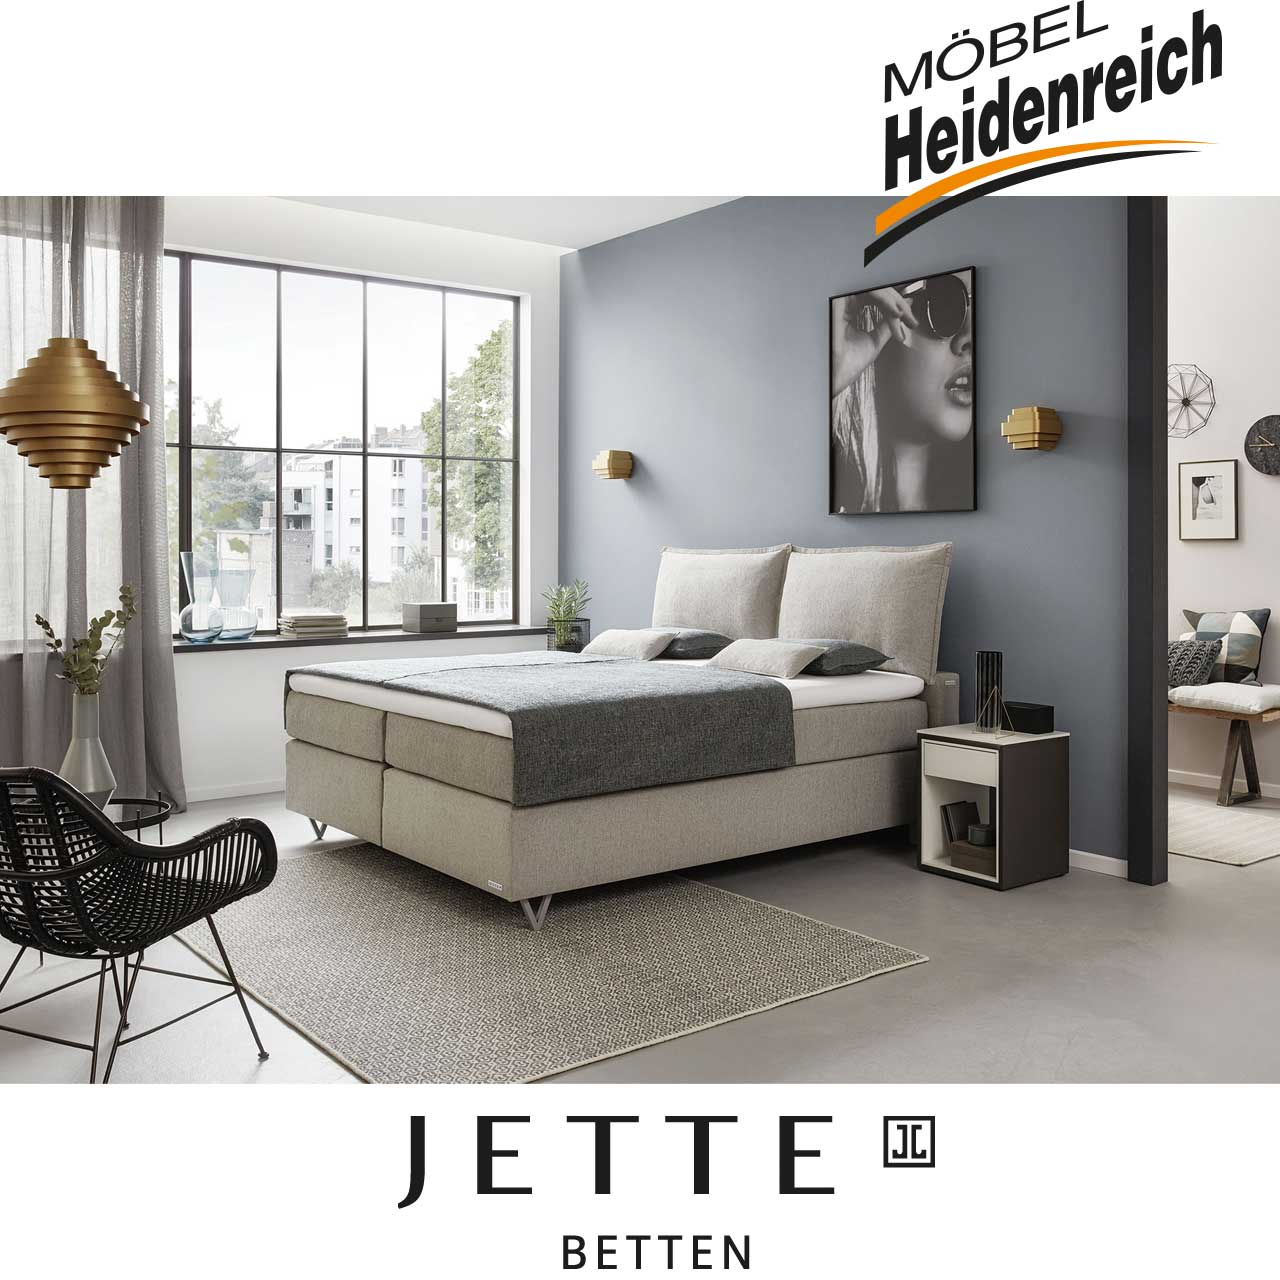 Jette-Betten Boxspringbett Basis #106